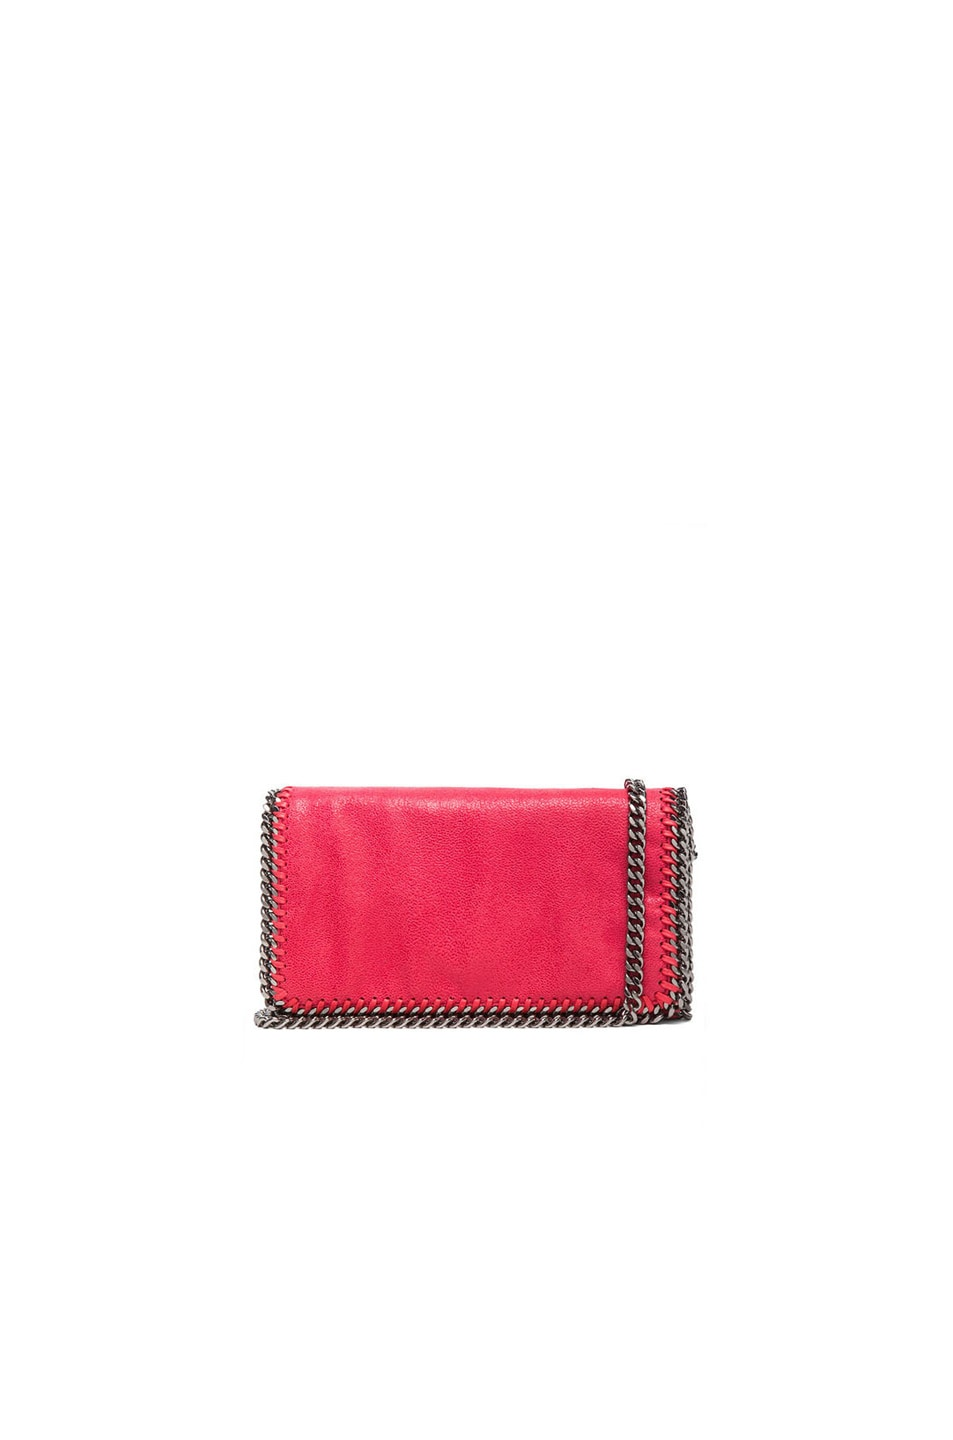 7b350715f1 Image 1 of Stella McCartney Falabella Shaggy Deer Crossbody Bag in Pink  Fluorescent